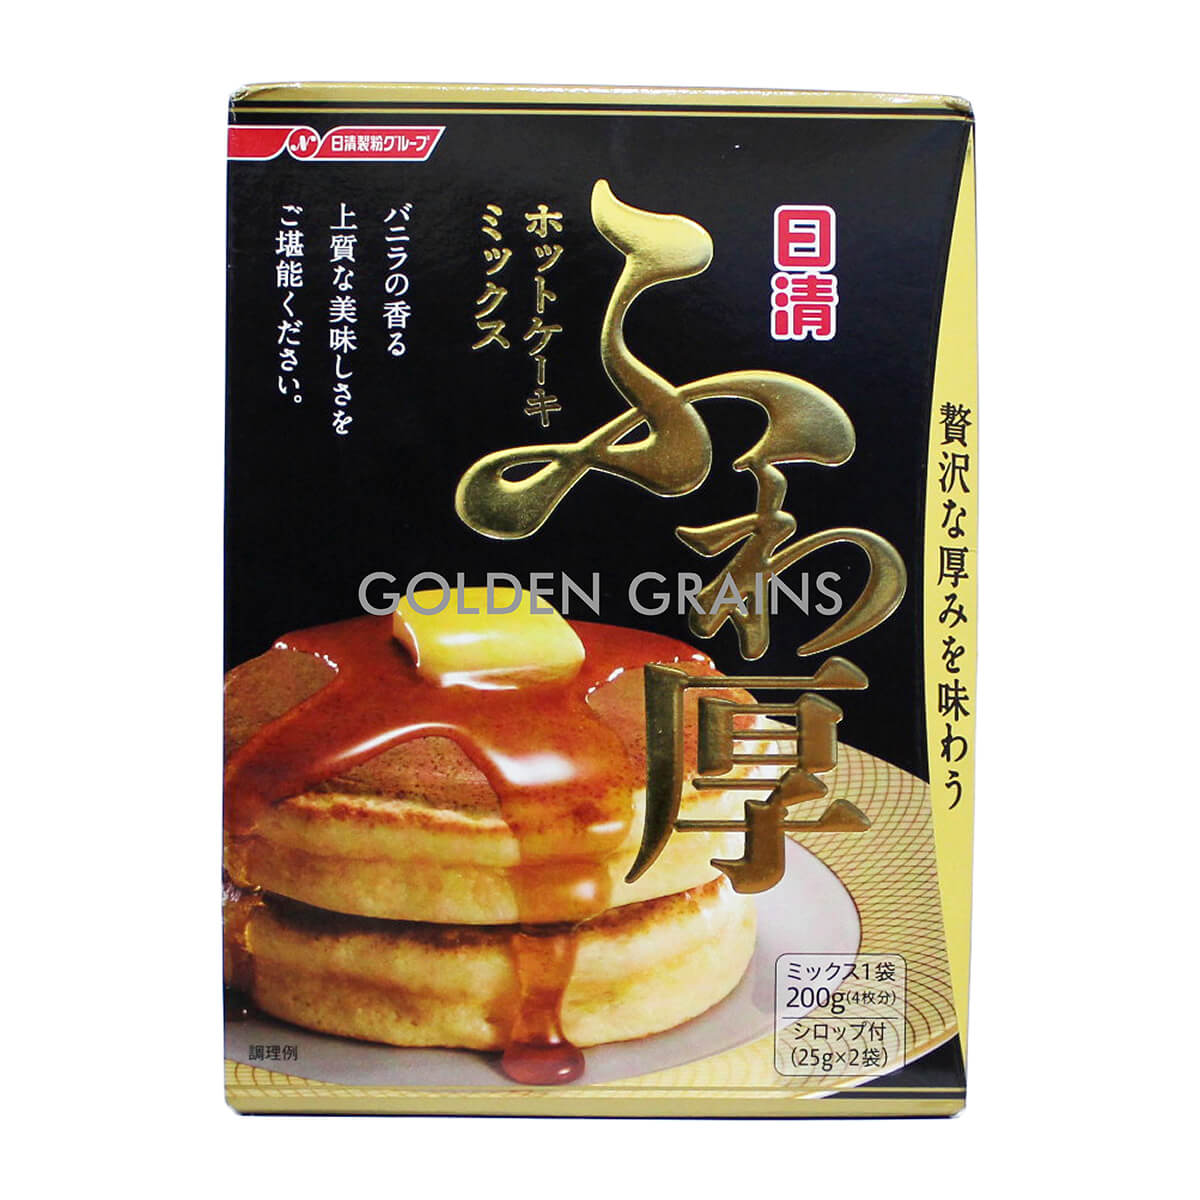 Golden Grains Nisshin Foods - Pancake Mix - Front.jpg